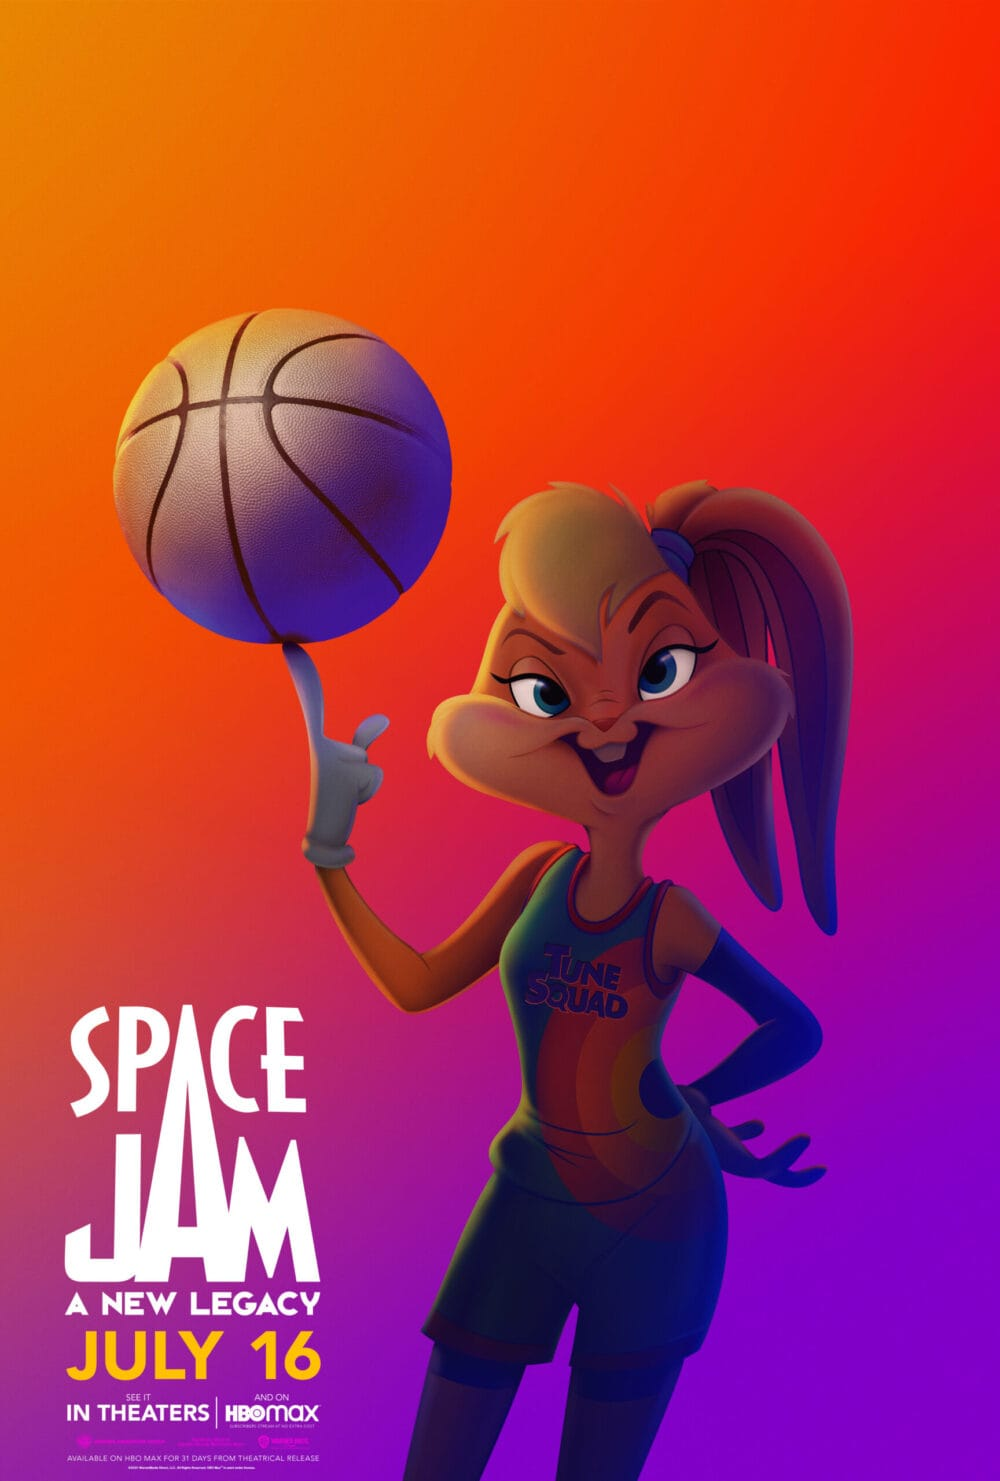 Lola Bunny Space Jam A New Legacy Character Poster